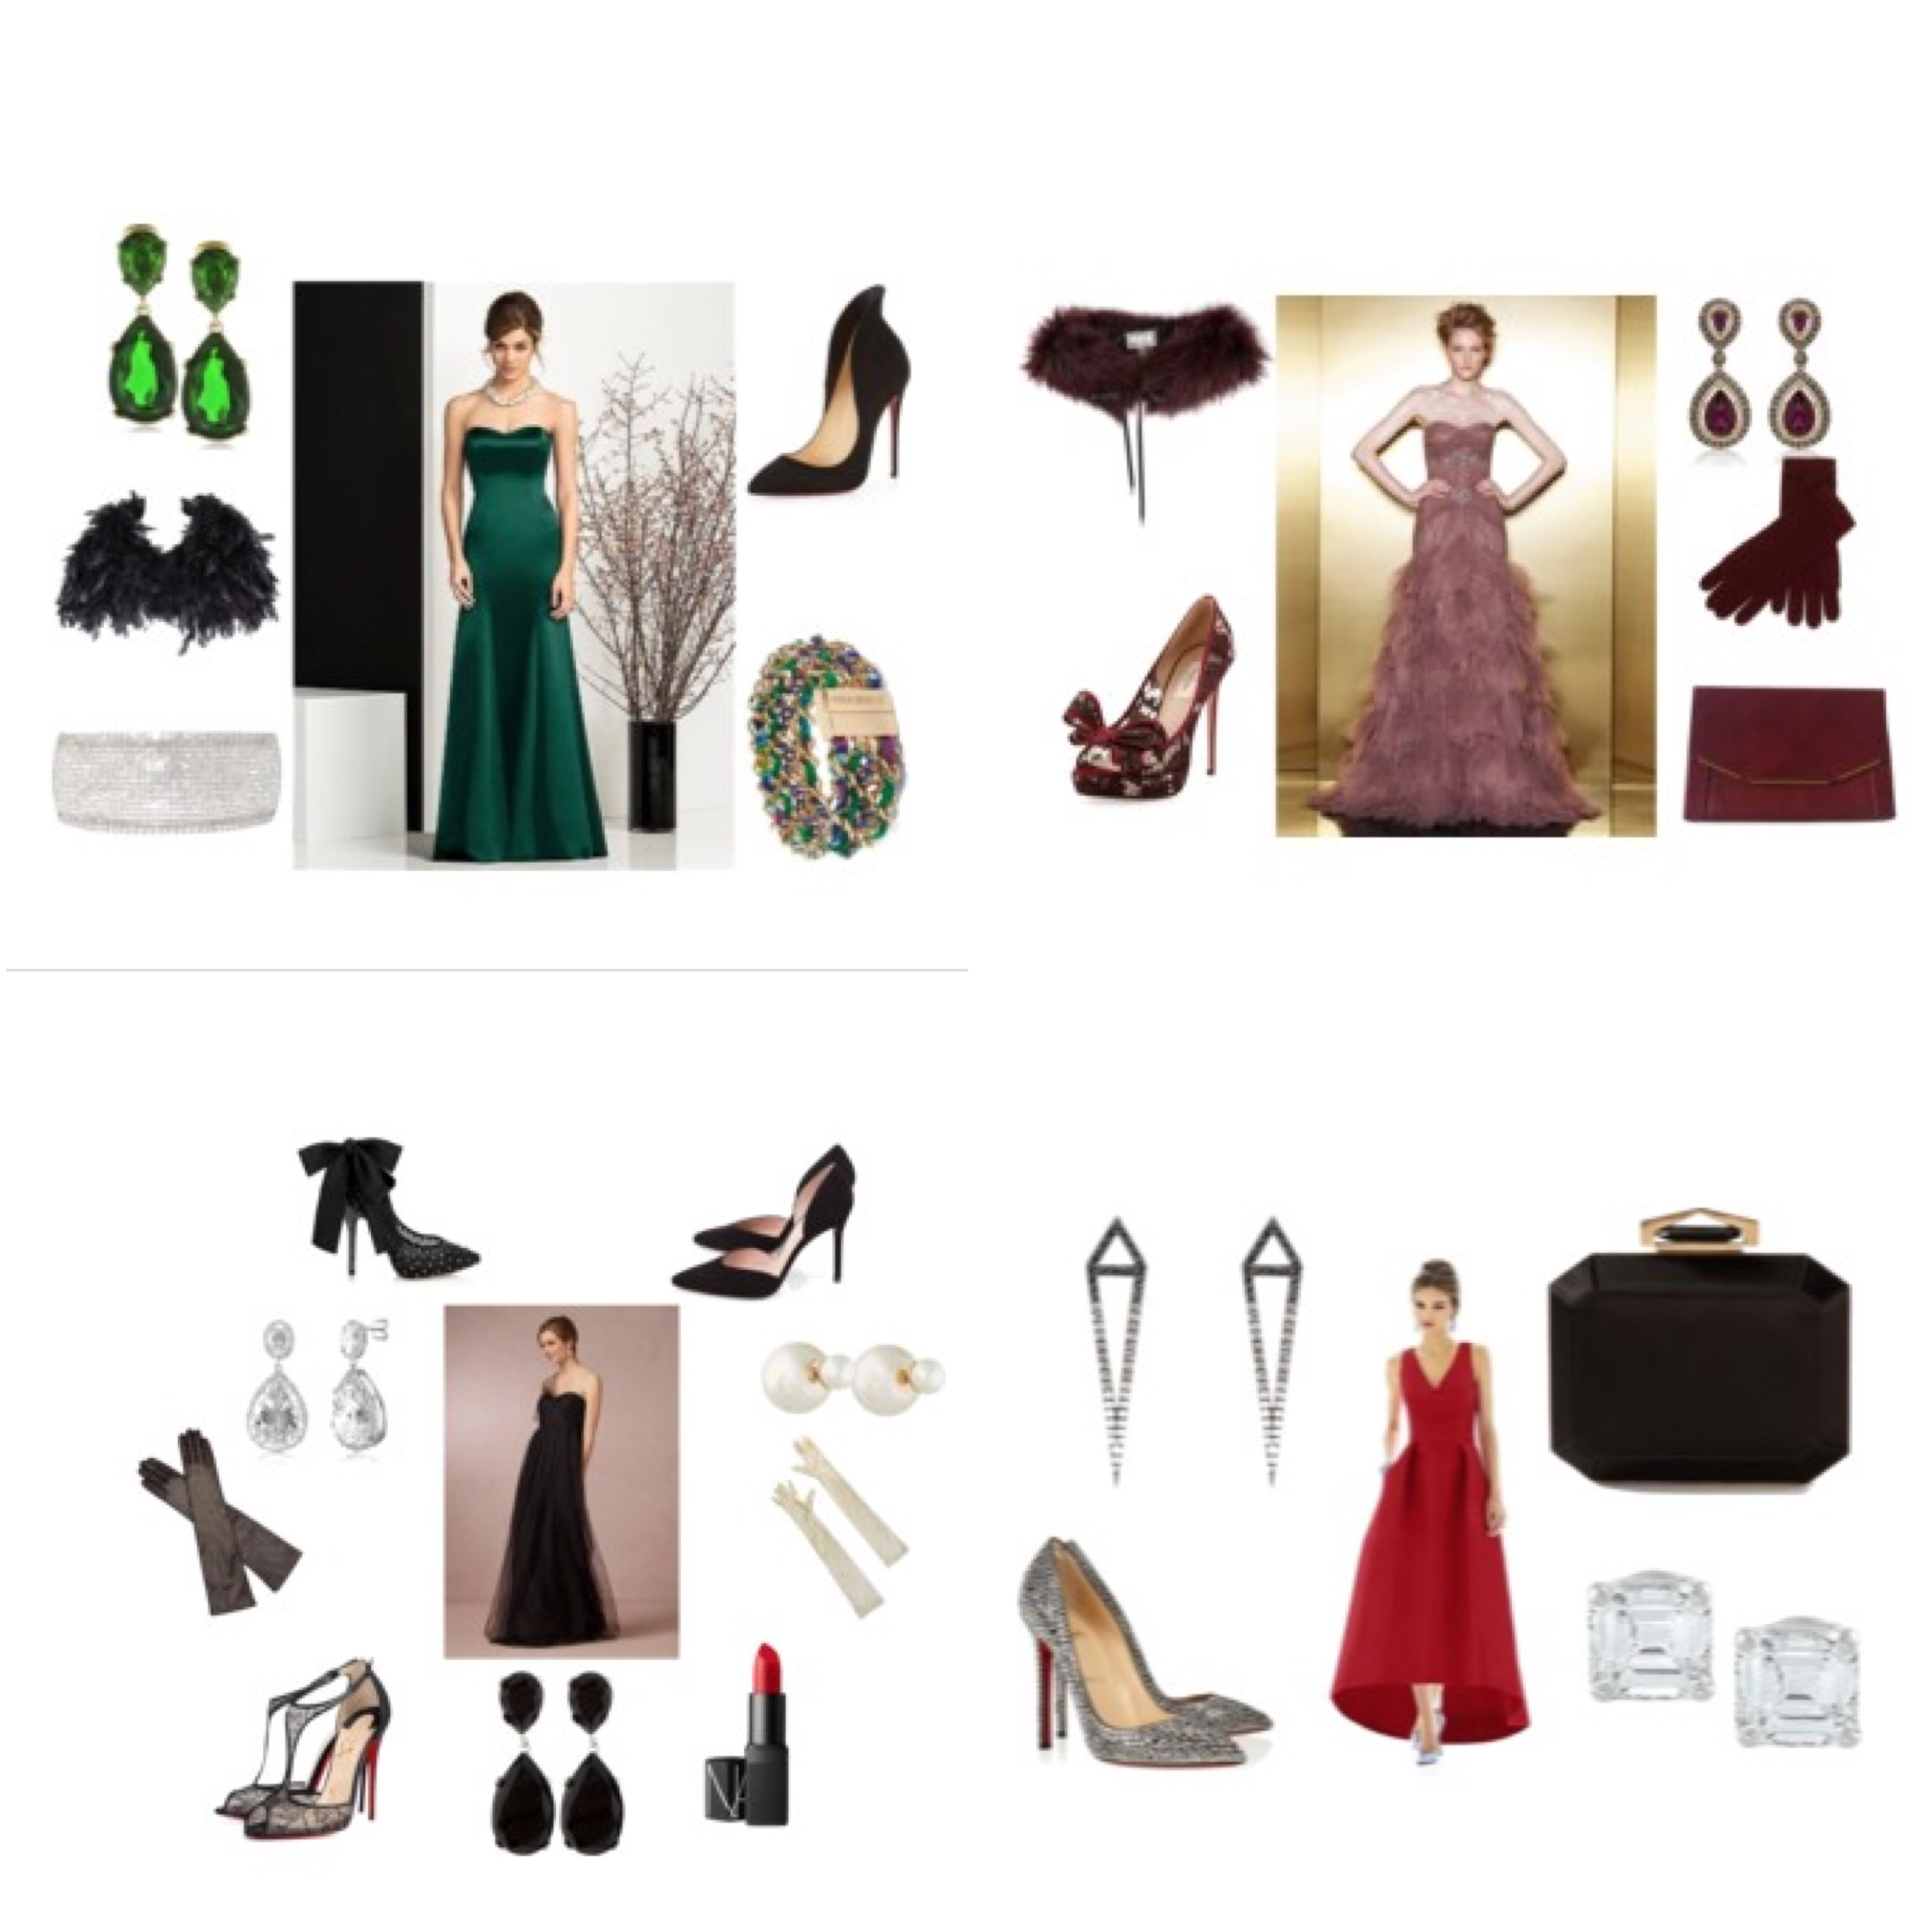 Las Vegas Wedding Planner Andrea Eppolito partnered with  Lover.ly  to showcase inspired bridesmaid styles for Winter 2015.  All inspiration is courtesy of  Polyvore .